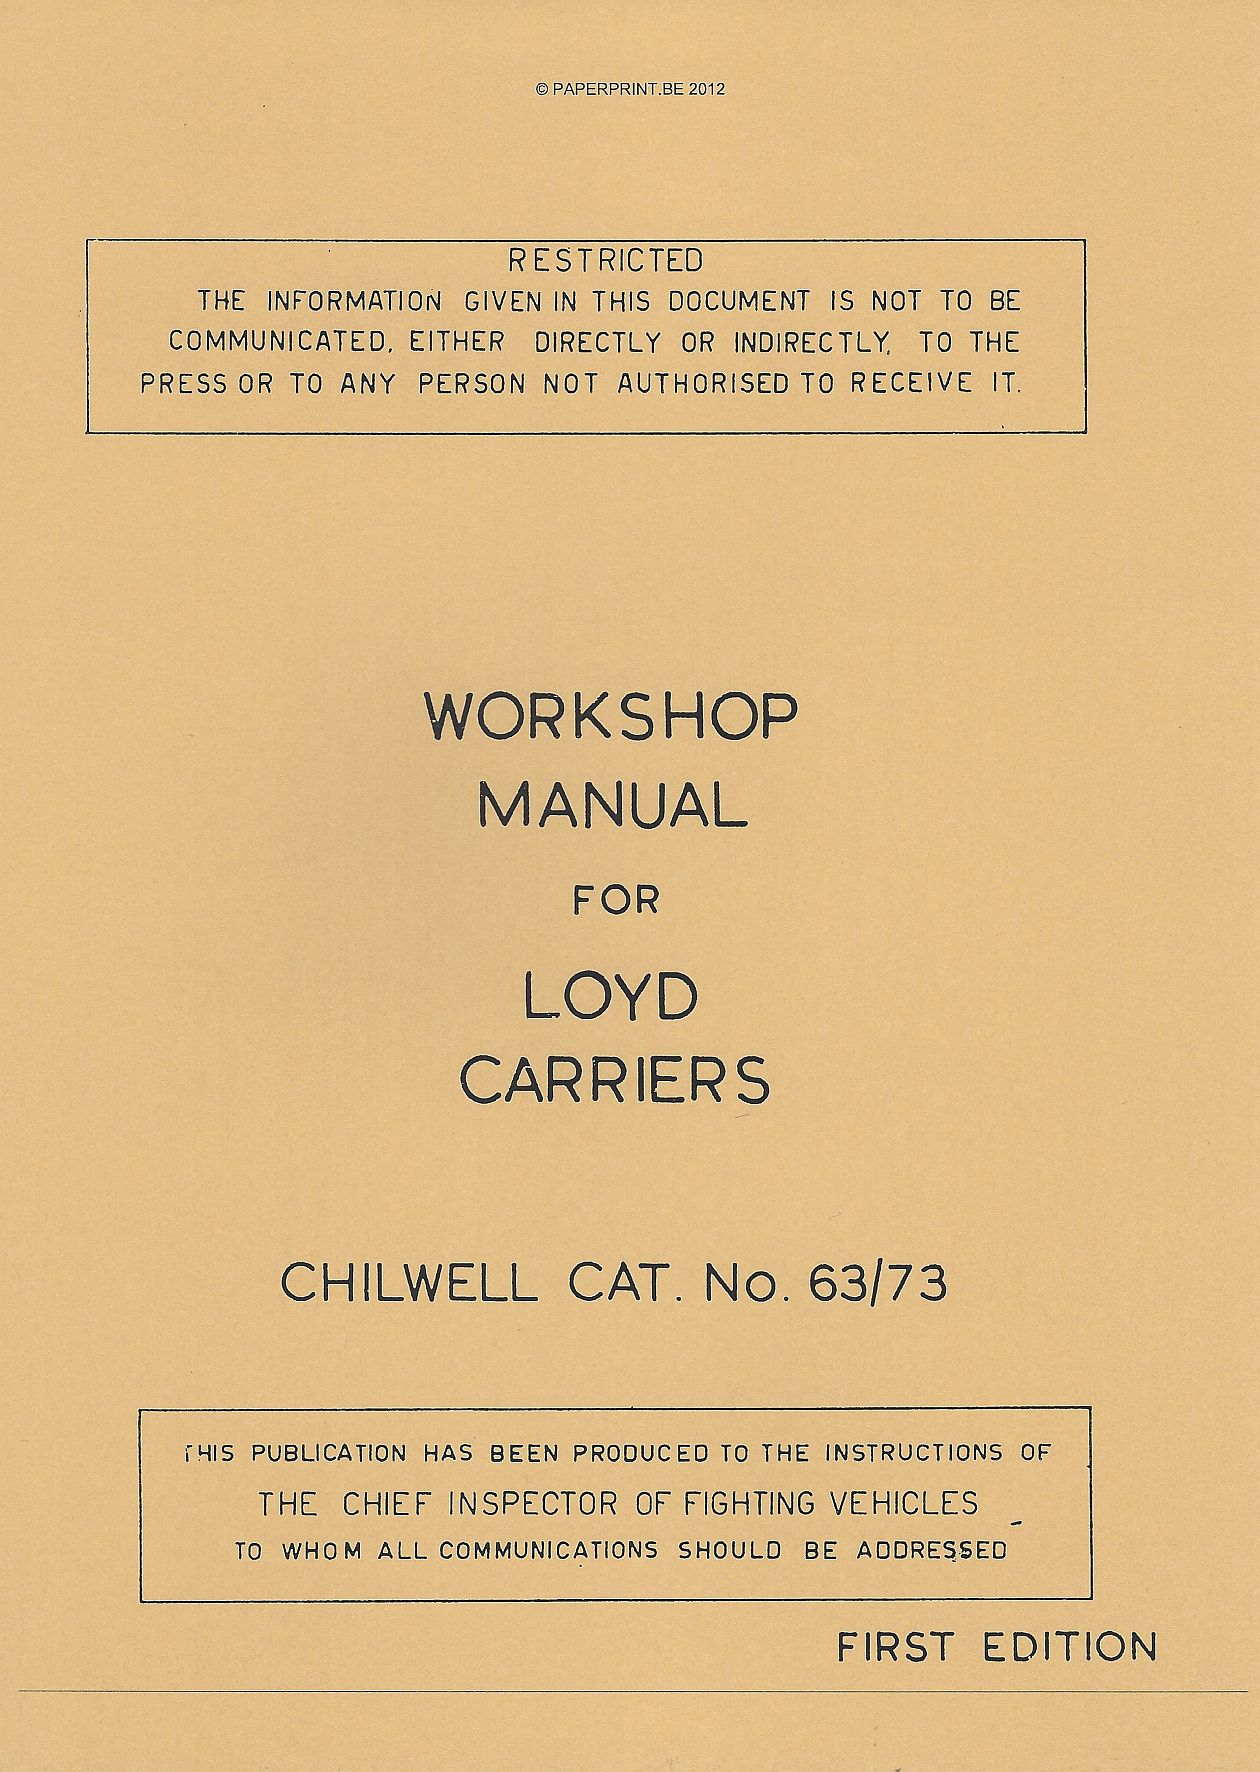 LOYD CARRIER WORKSHOP MANUAL